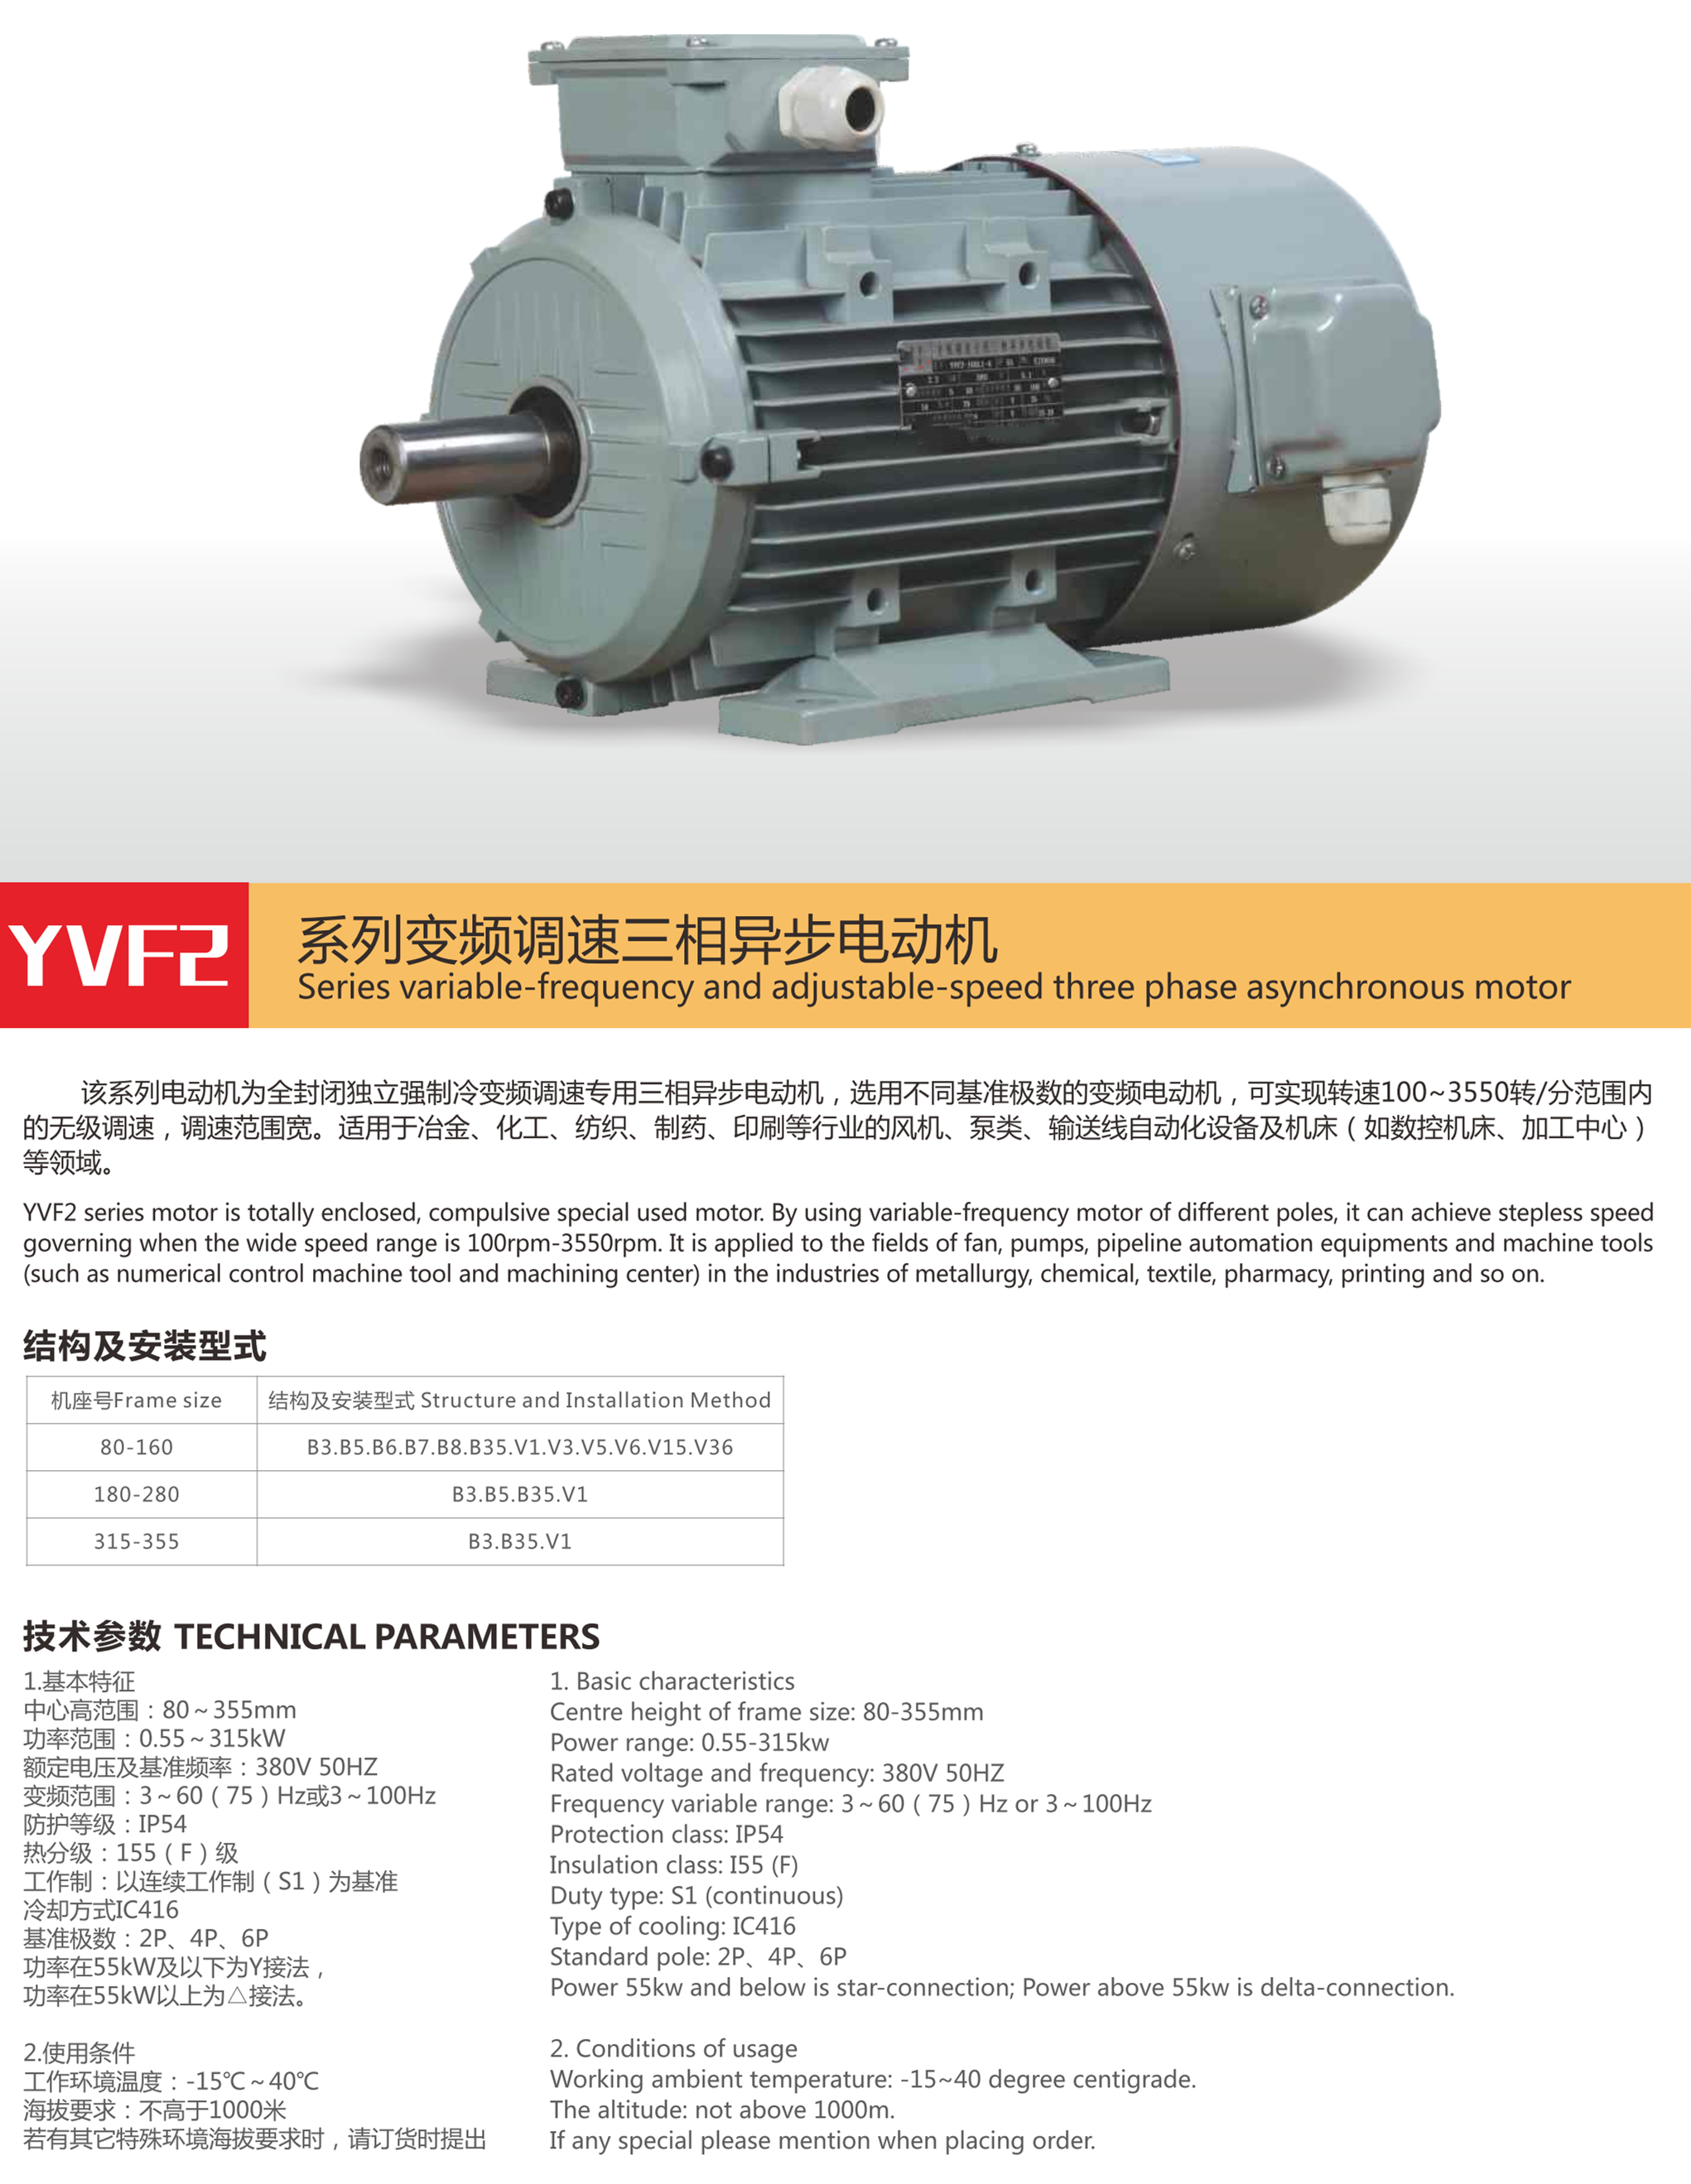 YVF2 Variable-Frequency and Adjustable-Speed Three Phase Asynchronous Motor